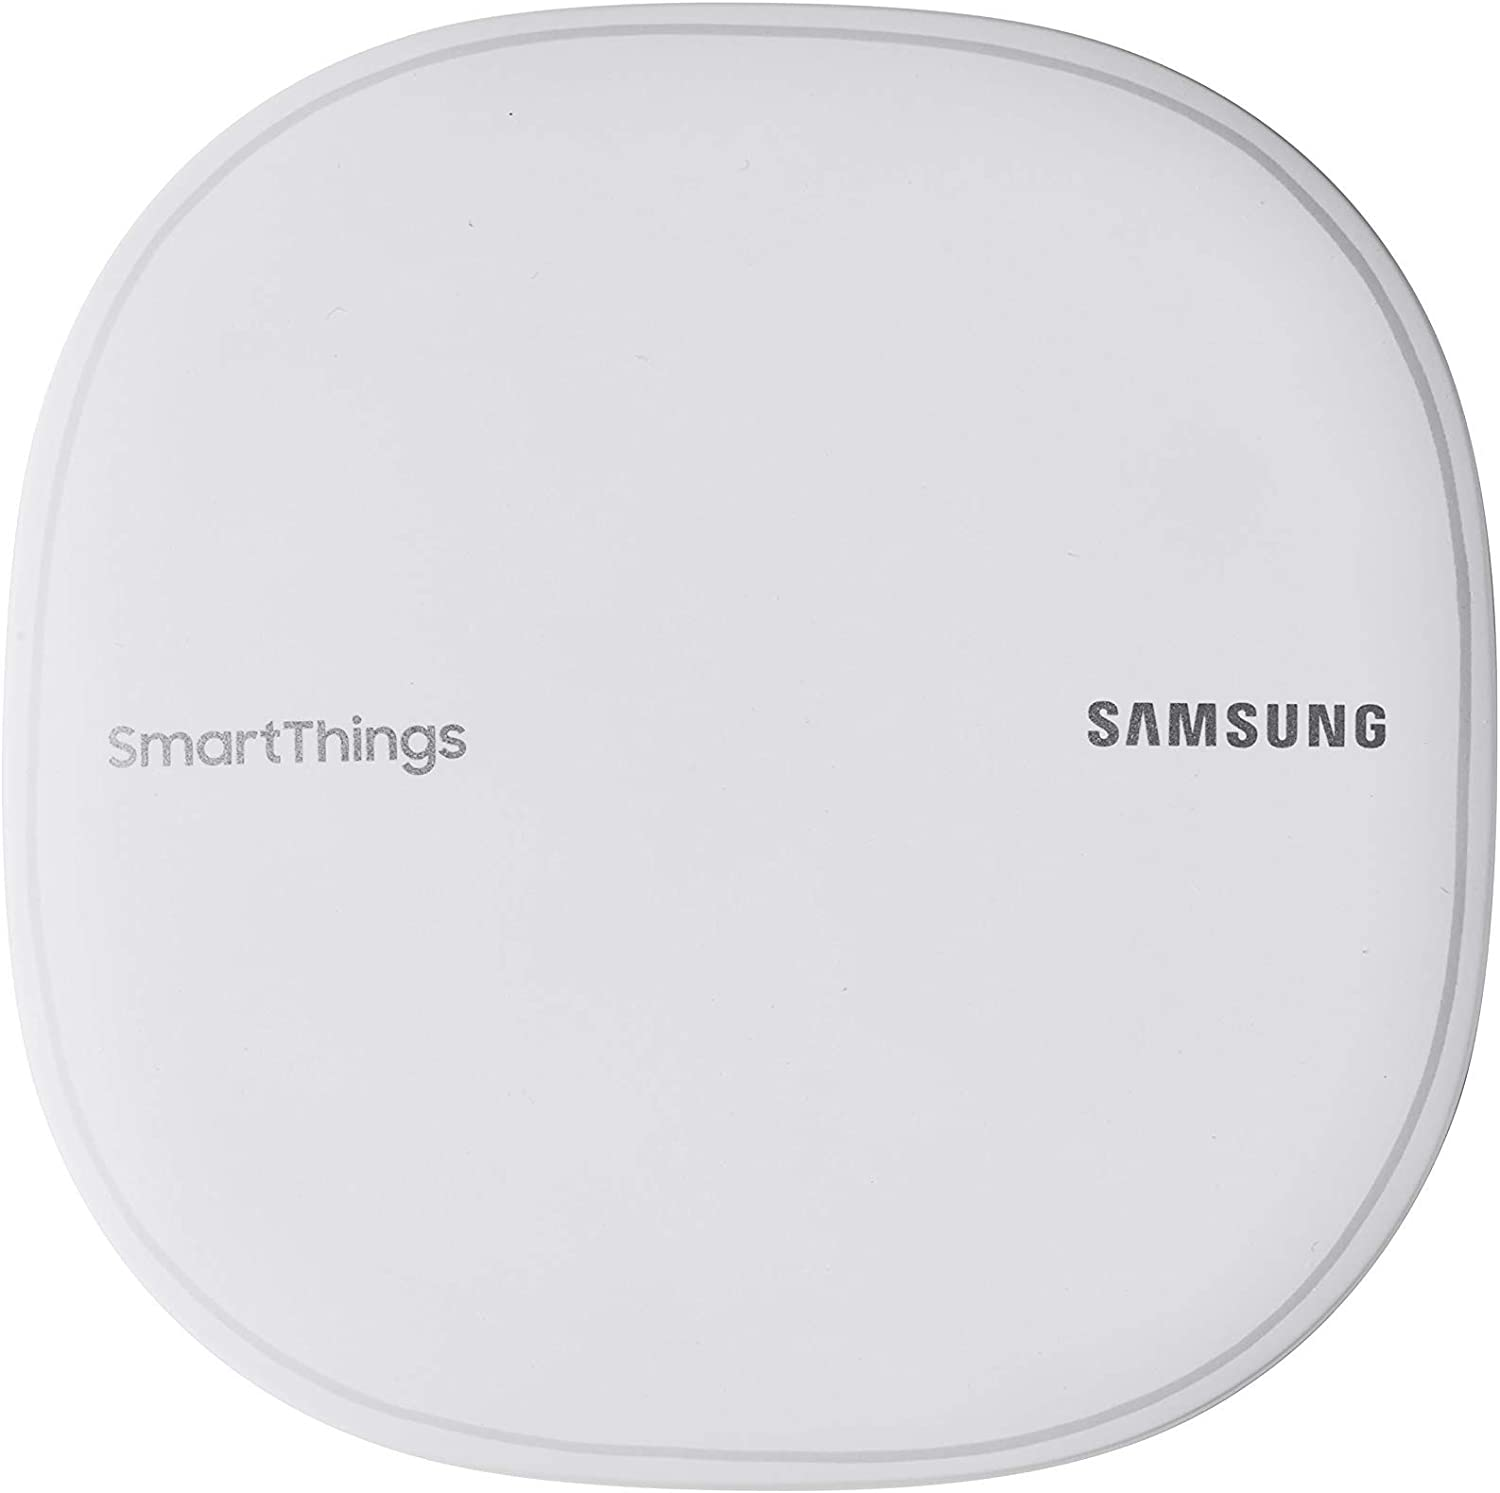 Samsung SmartThings Wifi Mesh Router Range Extender SmartThings Hub Functionality Whole-Home WiFi Coverage - Zigbee, Z-Wave, Cloud to Cloud Protocols - White (Single) (Renewed)